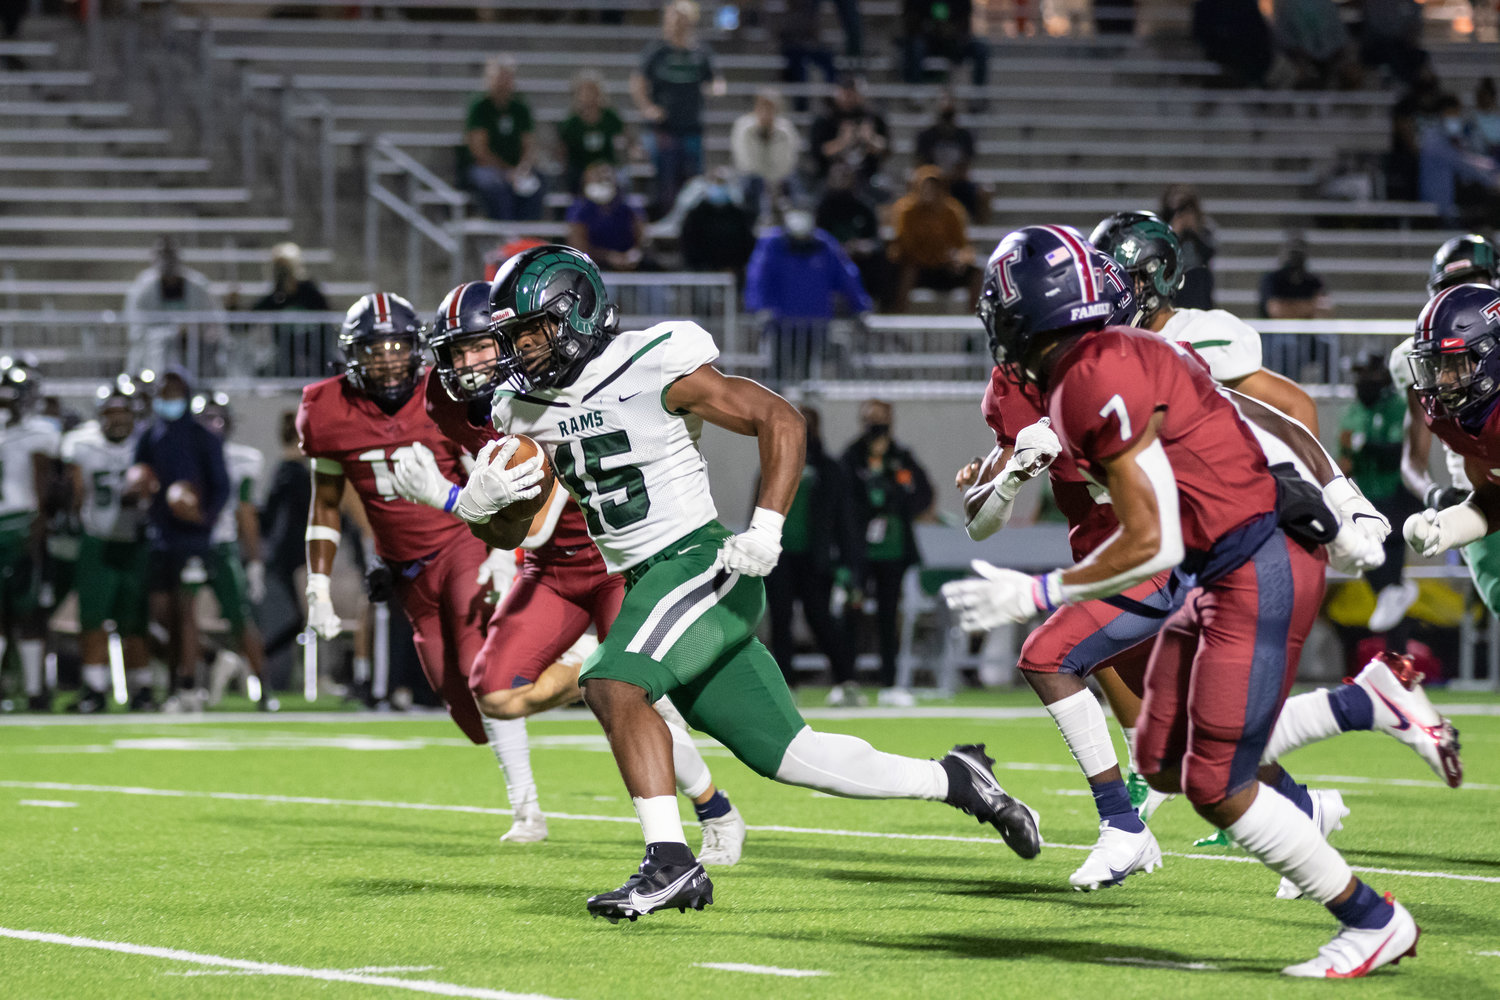 Mayde Creek running back Julius Loughridge gains separation from defenders during Tompkins' win over Mayde Creek on Thursday evening at Legacy Stadium.